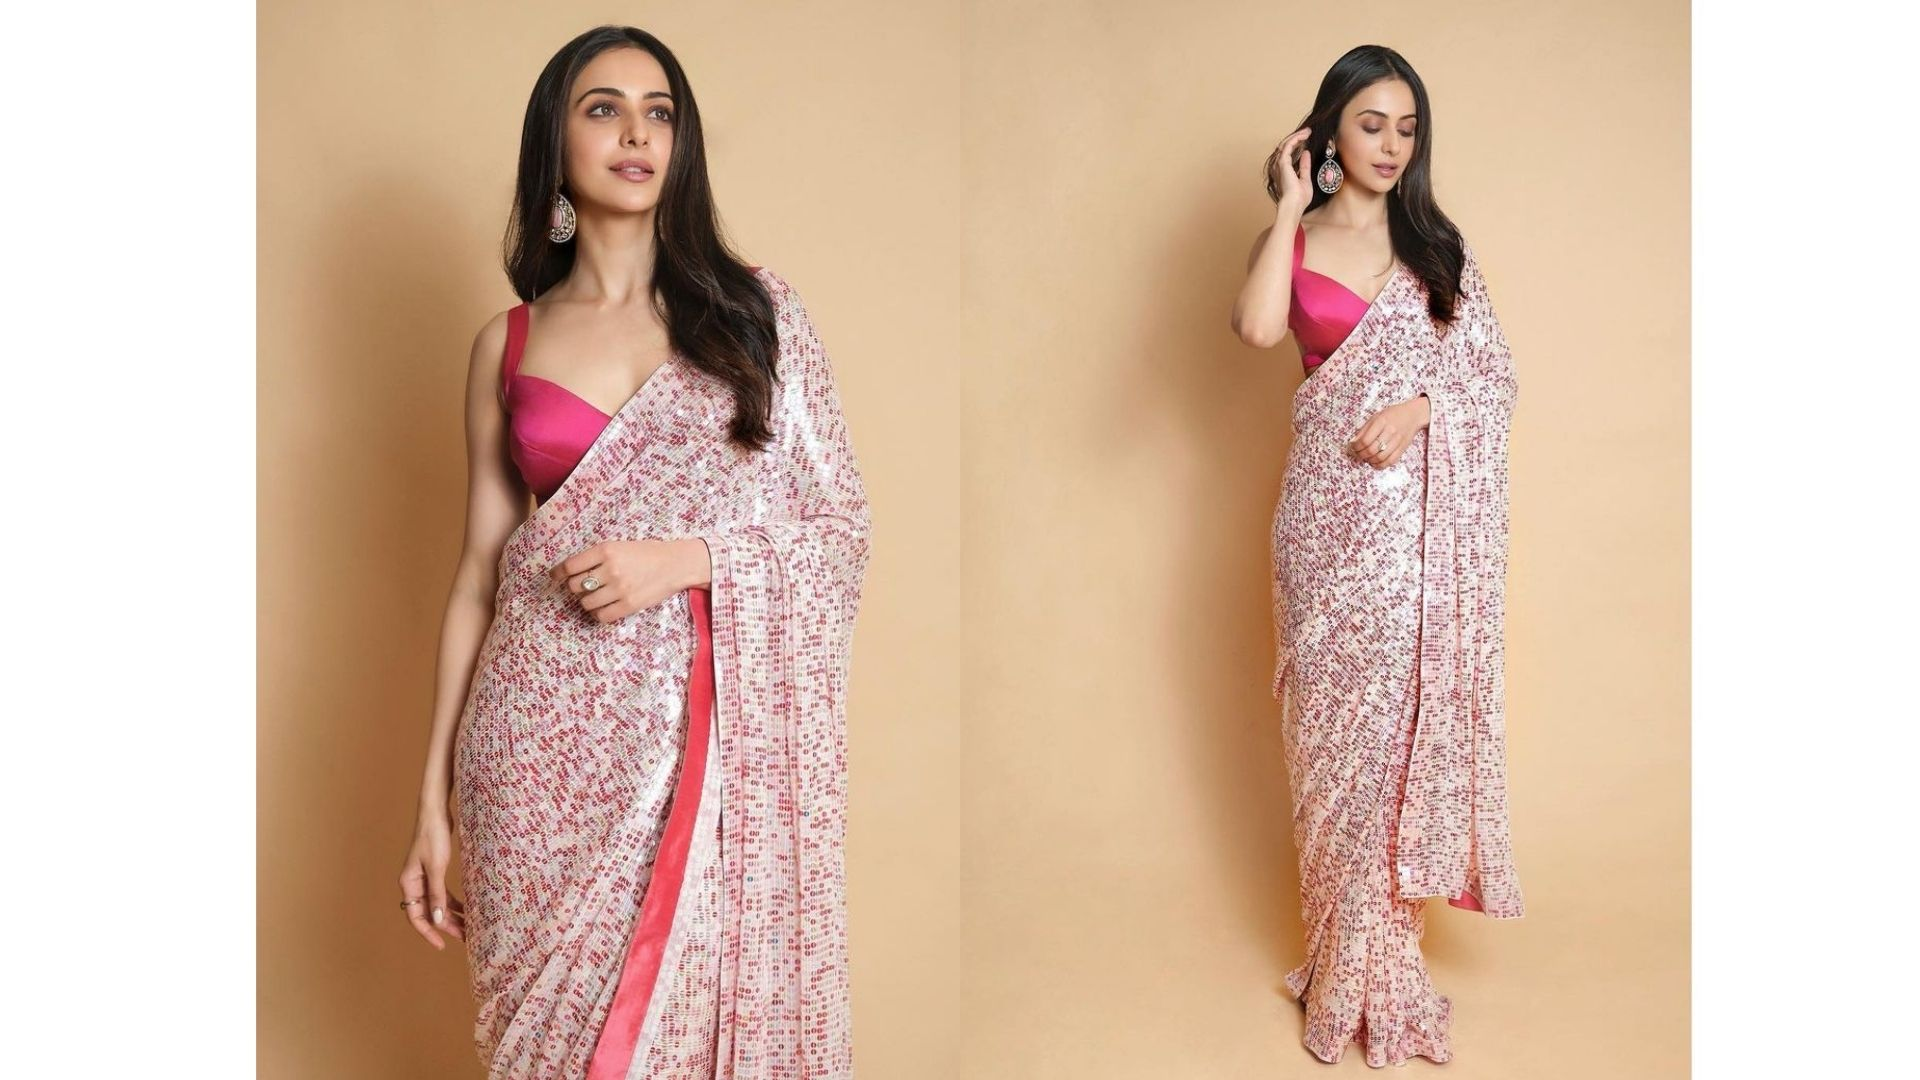 Rakul Preet Singh Looks An Ethnic Barbie In Her Latest Sequined Indian Attire